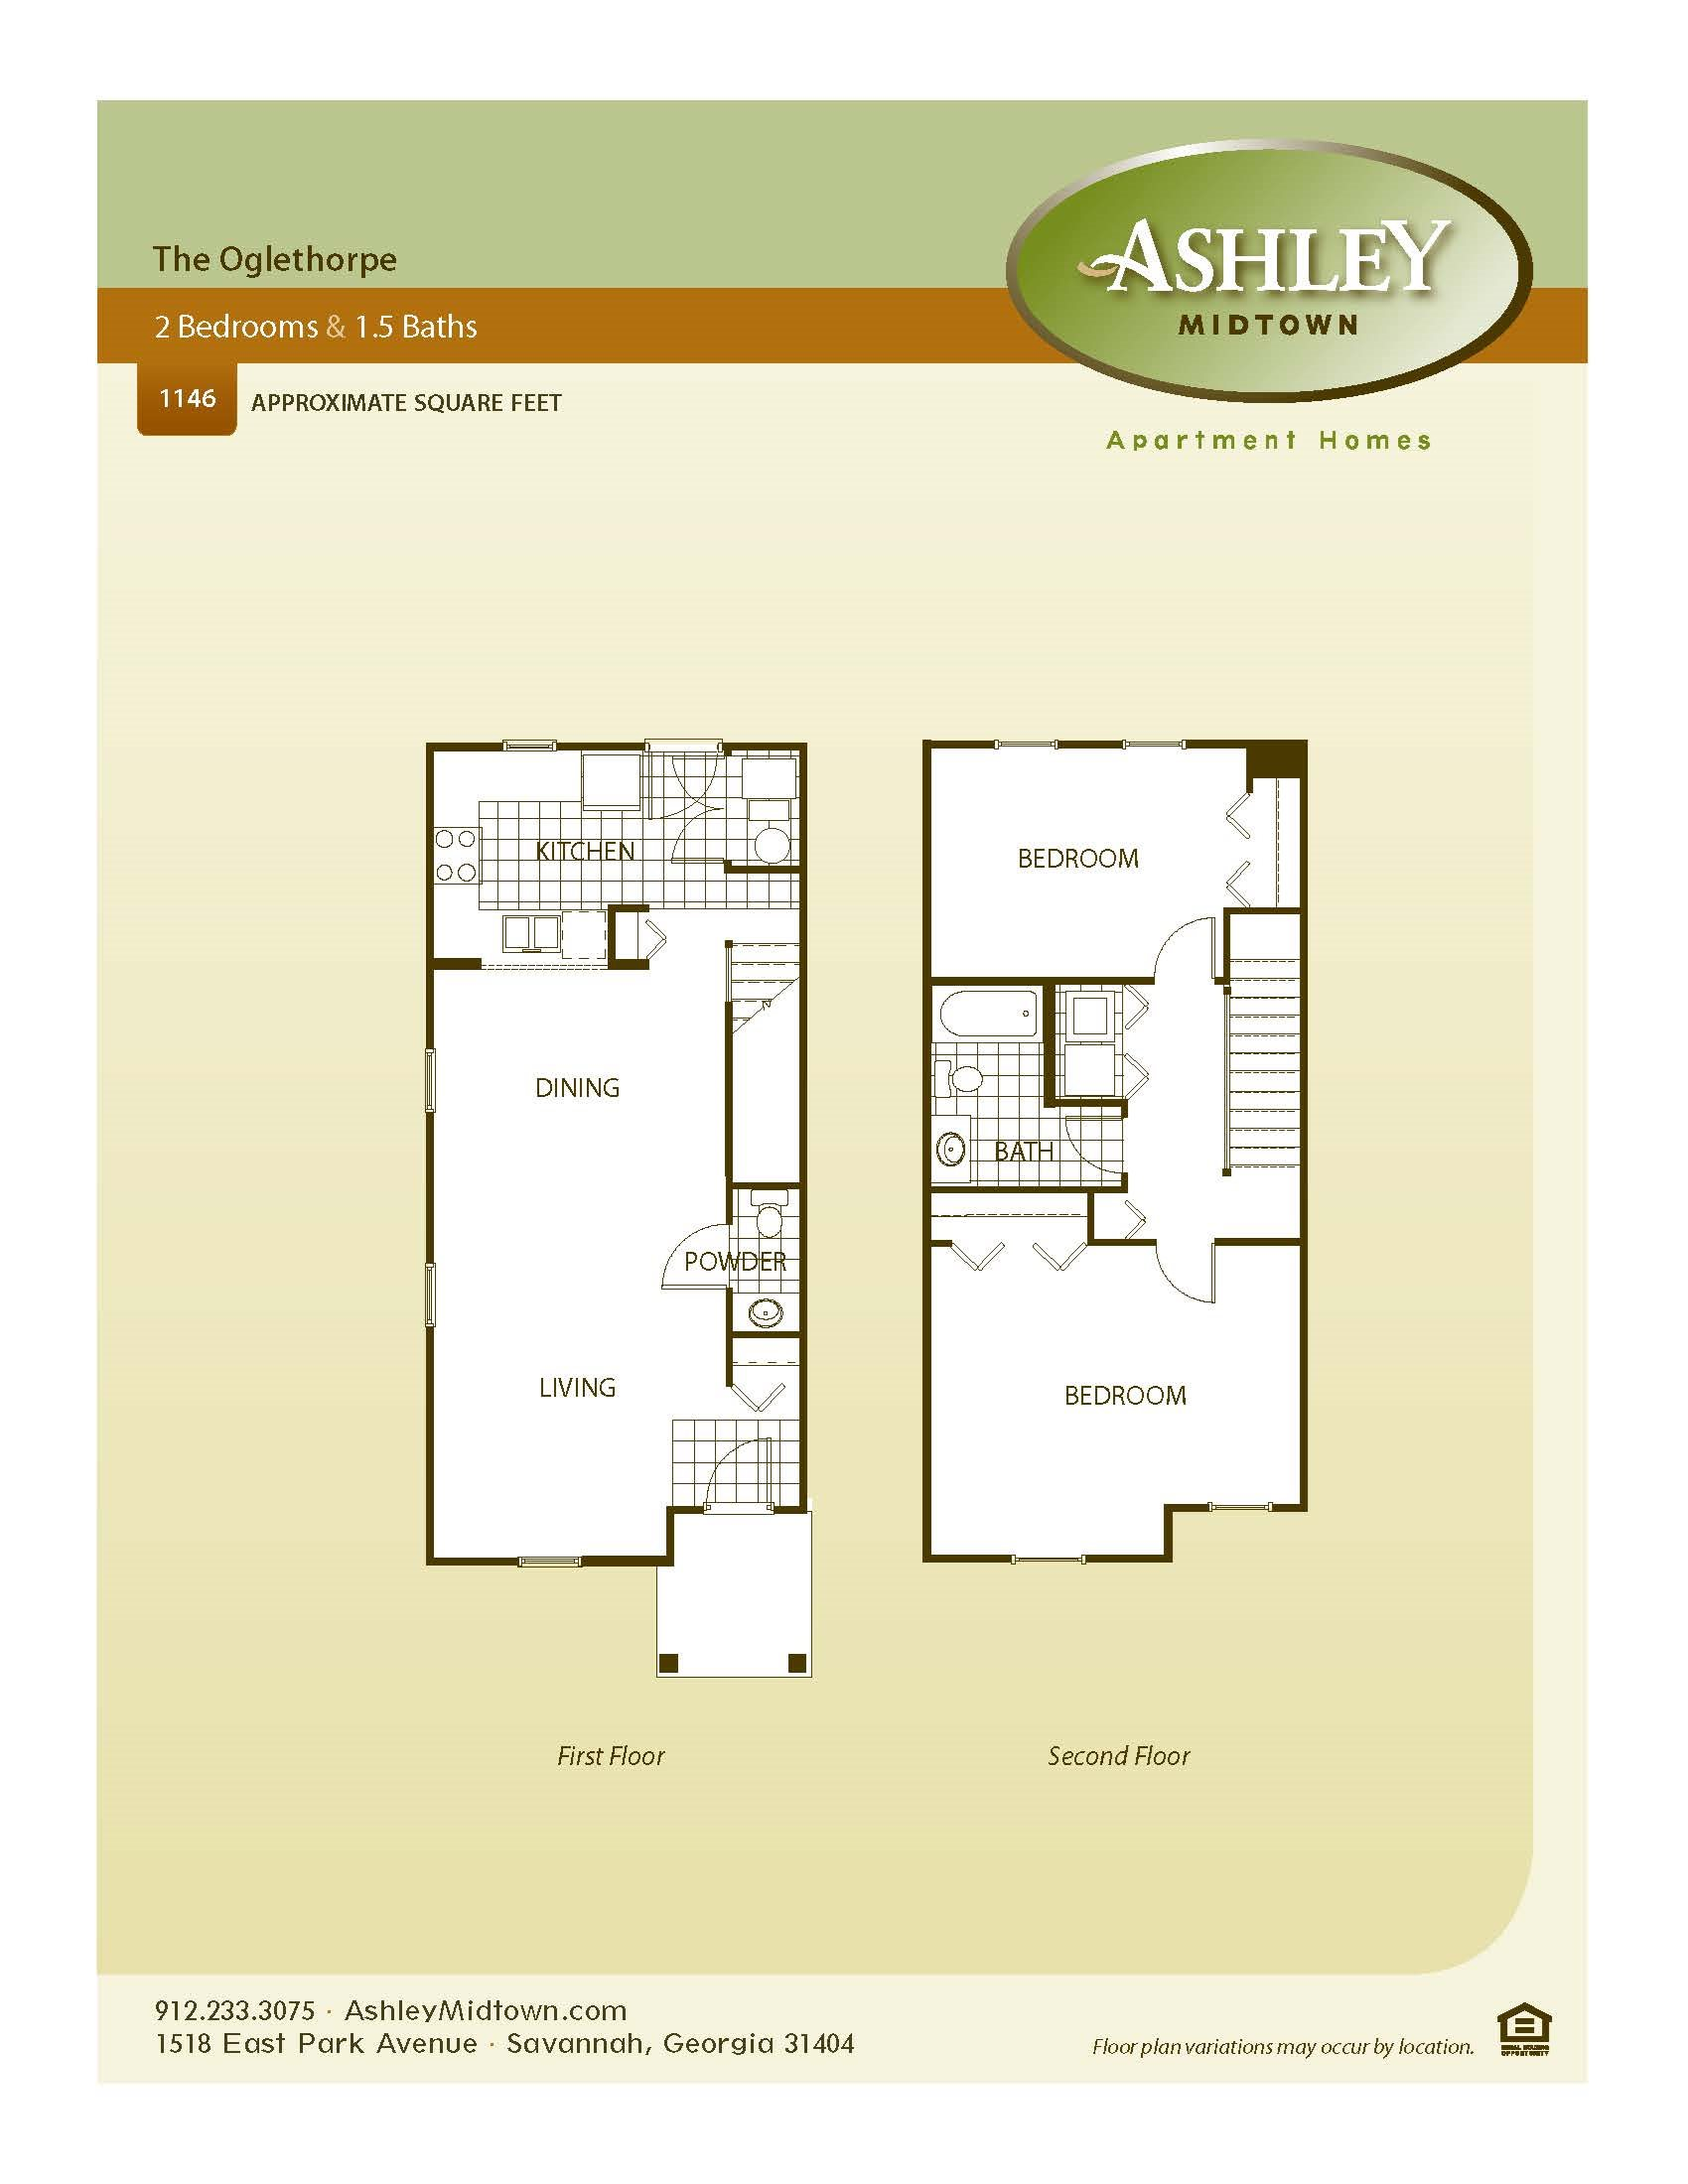 The Oglethorpe Floor Plan 2